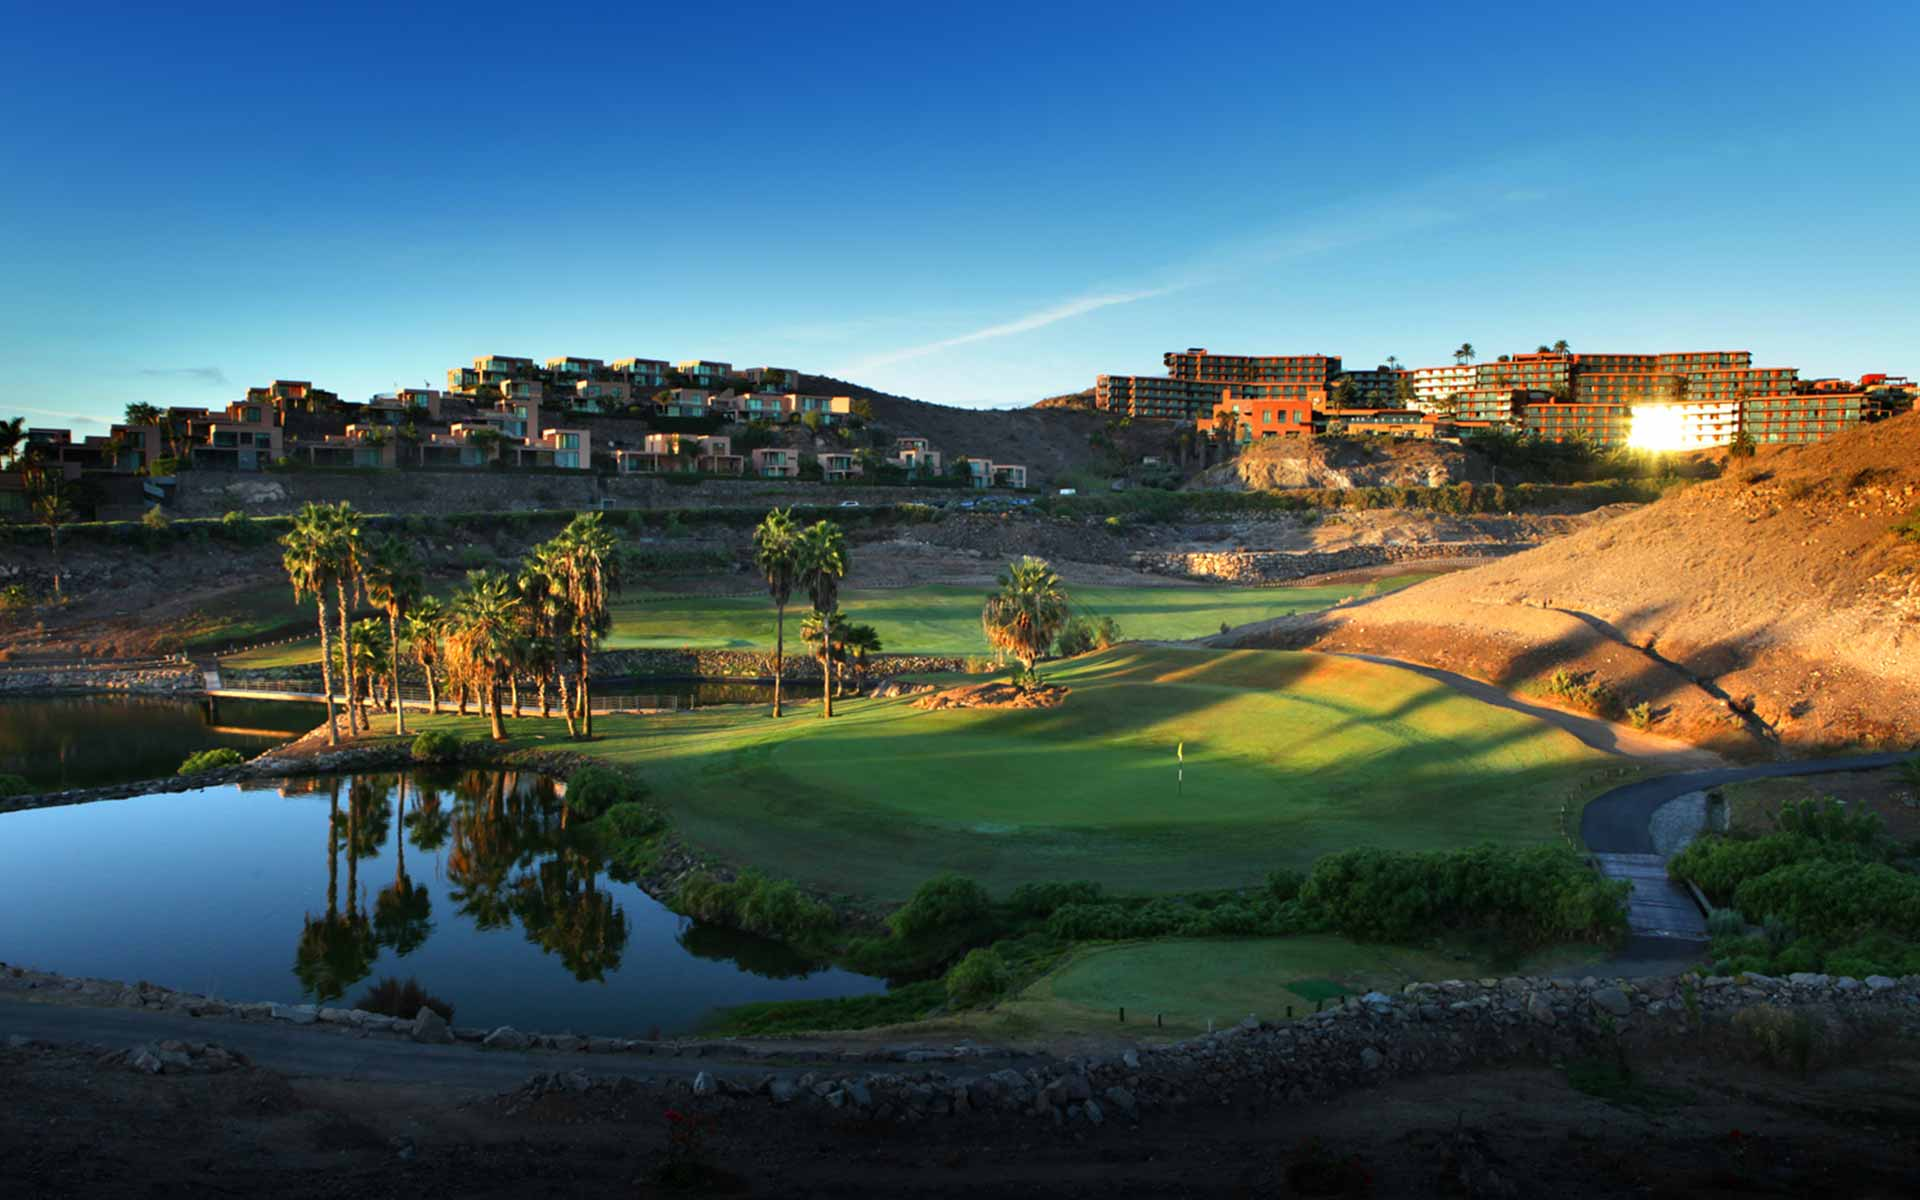 Top 5 Golf Resorts in Spain- the Definitive Guide 2019